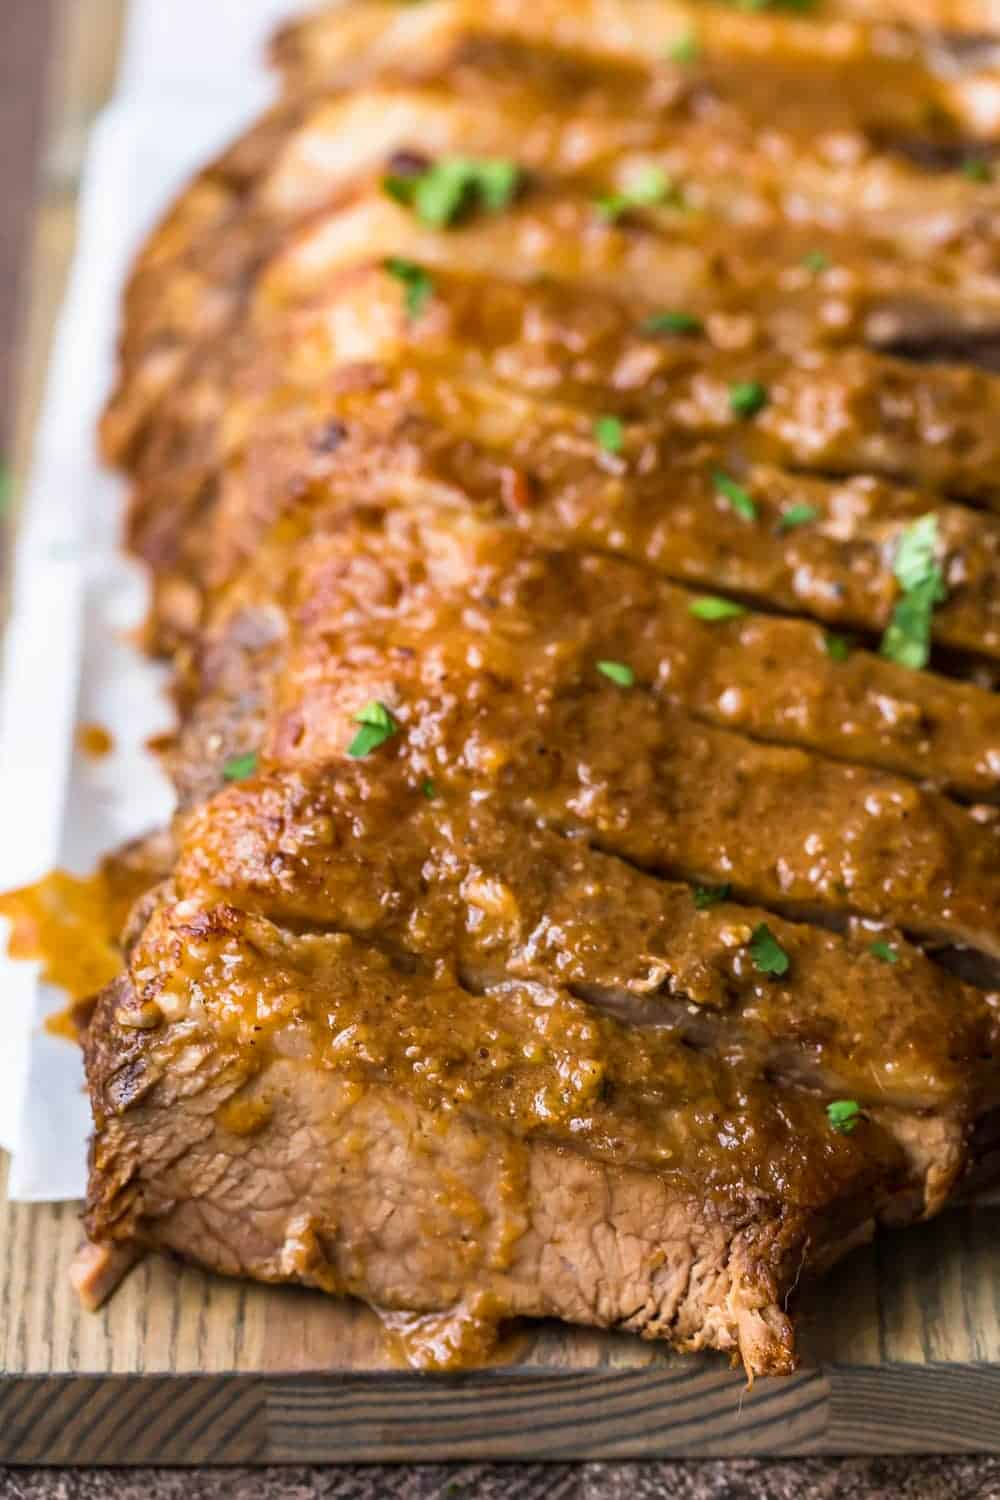 Sweet and sour brisket on a wooden chopping board